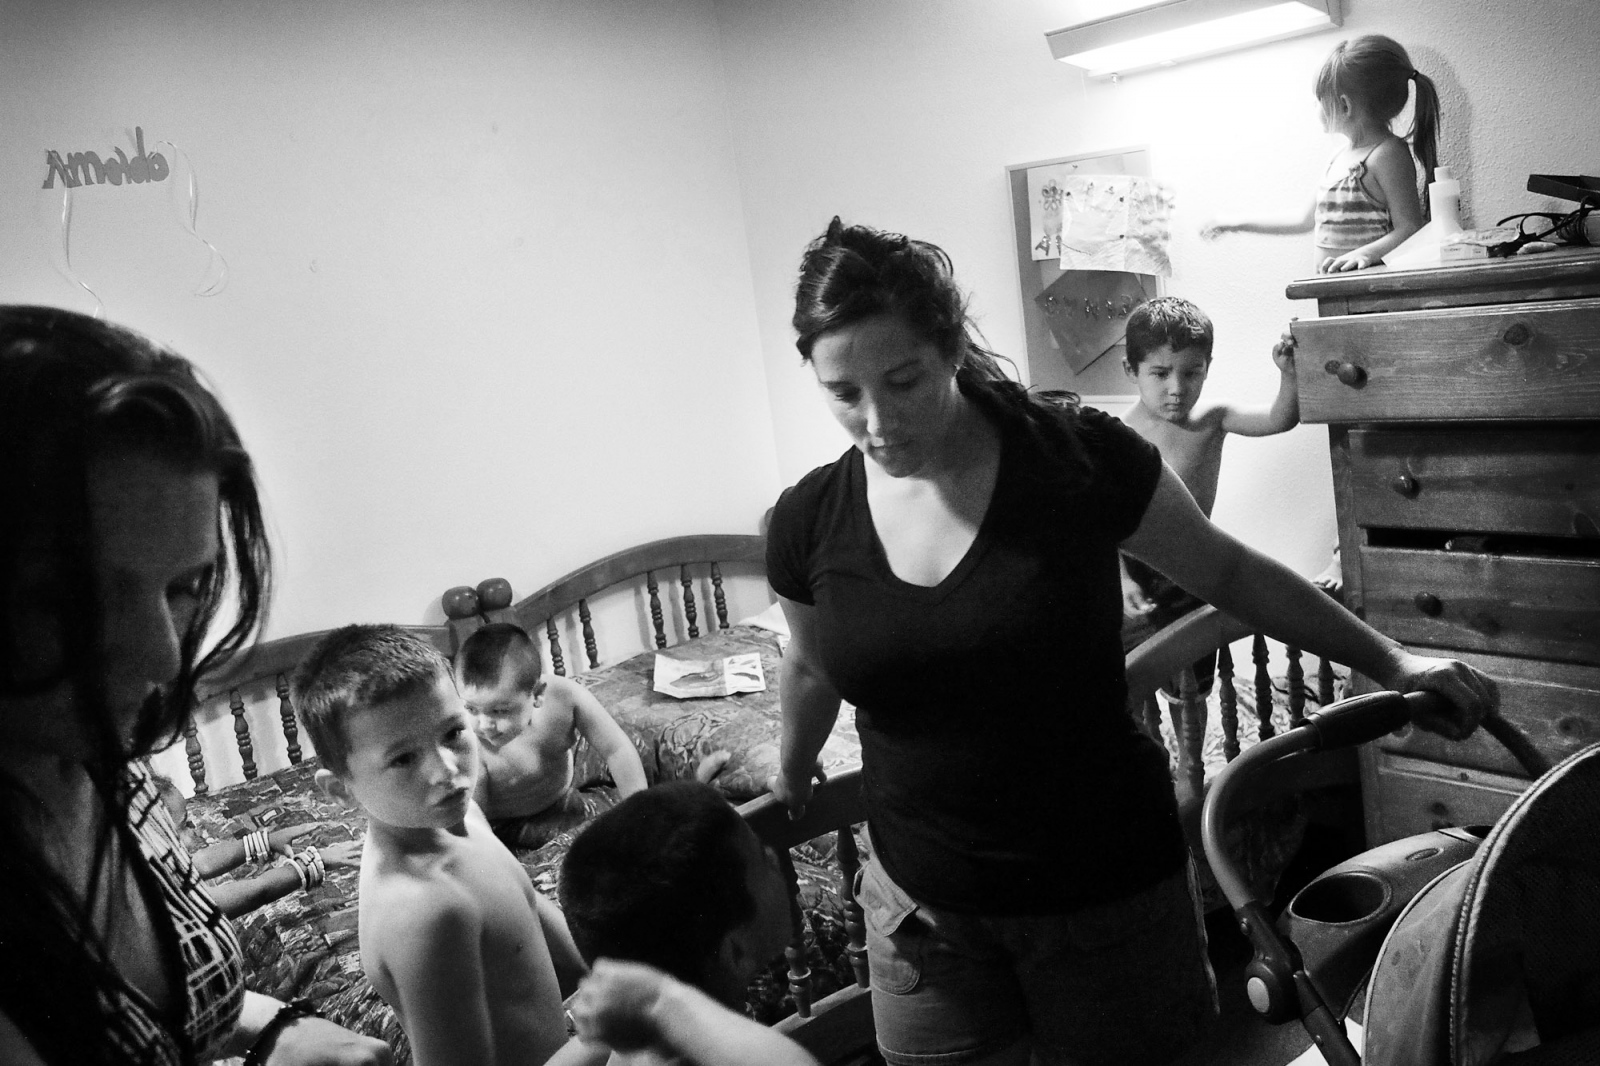 Fresno, California, 2013 In a room of the West Care clinic, two women look after their children. One of the main effects of Crystal Meth use is loss of sexual inhibitions, this has resulted in a high number of births among users of the drug. When the social services find out that the parents are drug users the CPS procedure for child protection is immediately taken into effect and the children get taken into care. This one of the main reasons that pushes drug addict mothers to go on the rehabilitation programme.